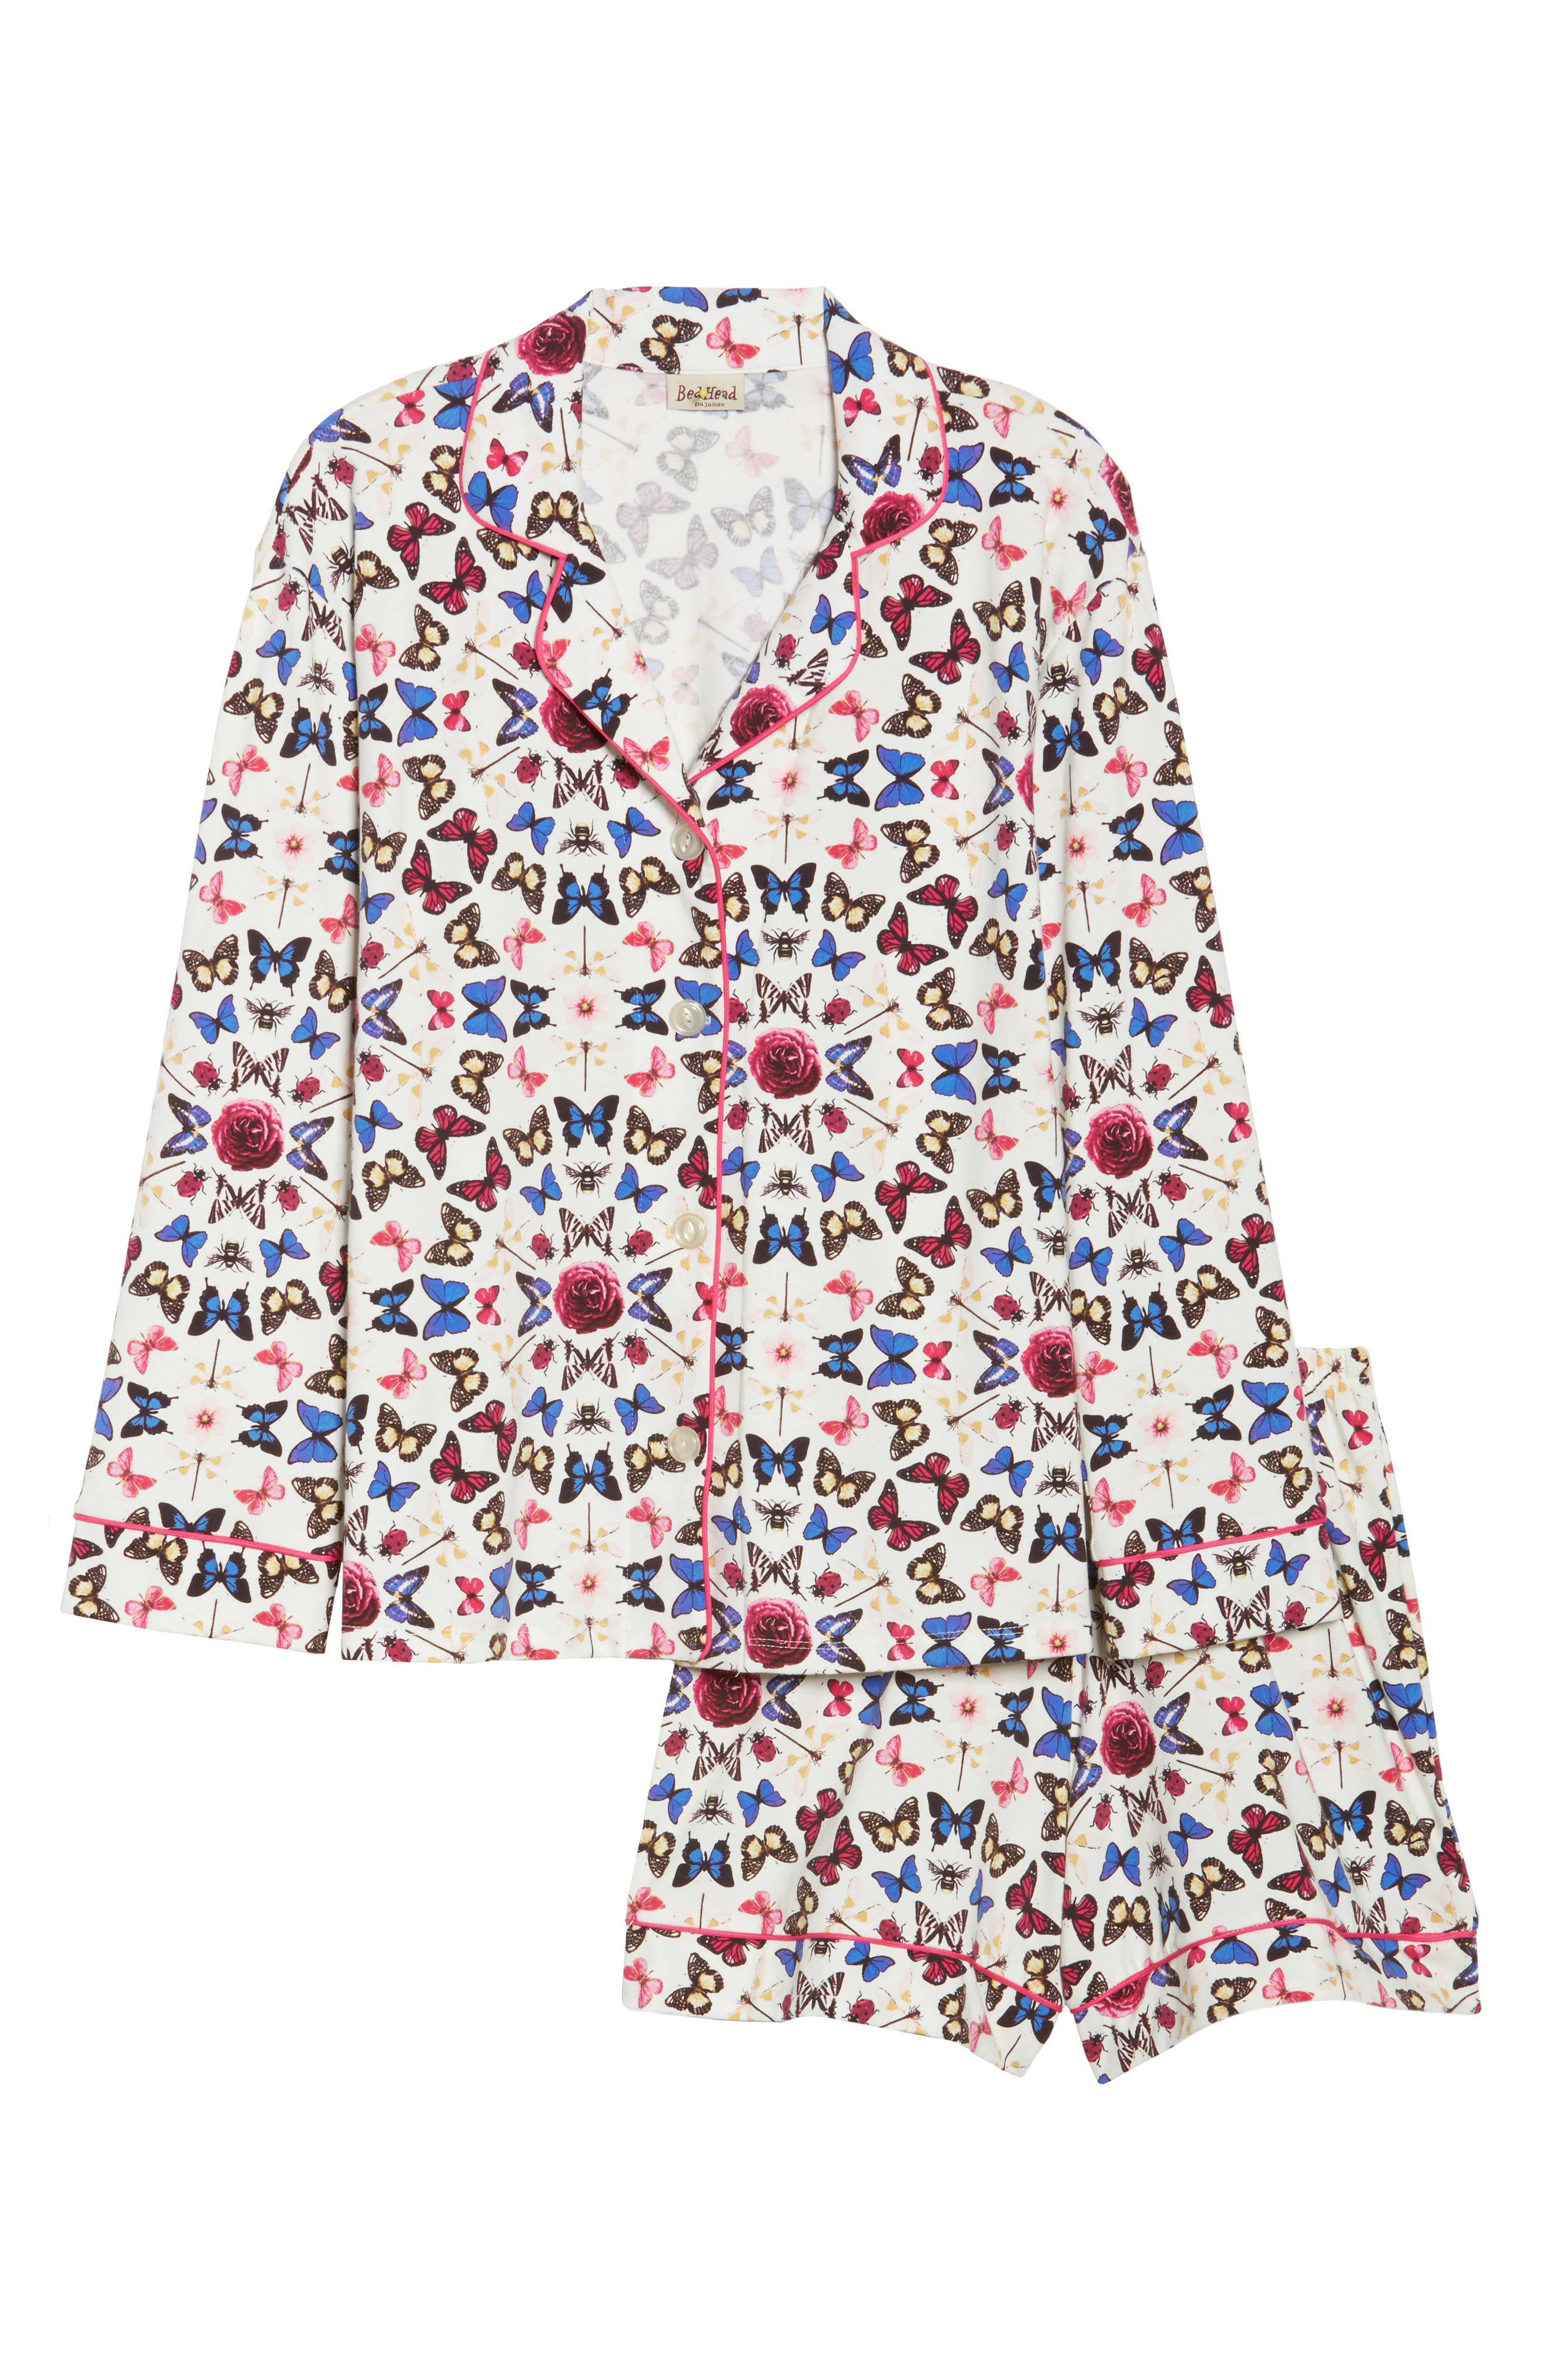 Rouge Short Pajamas,                             Alternate thumbnail 4, color,                             Butterfly Print